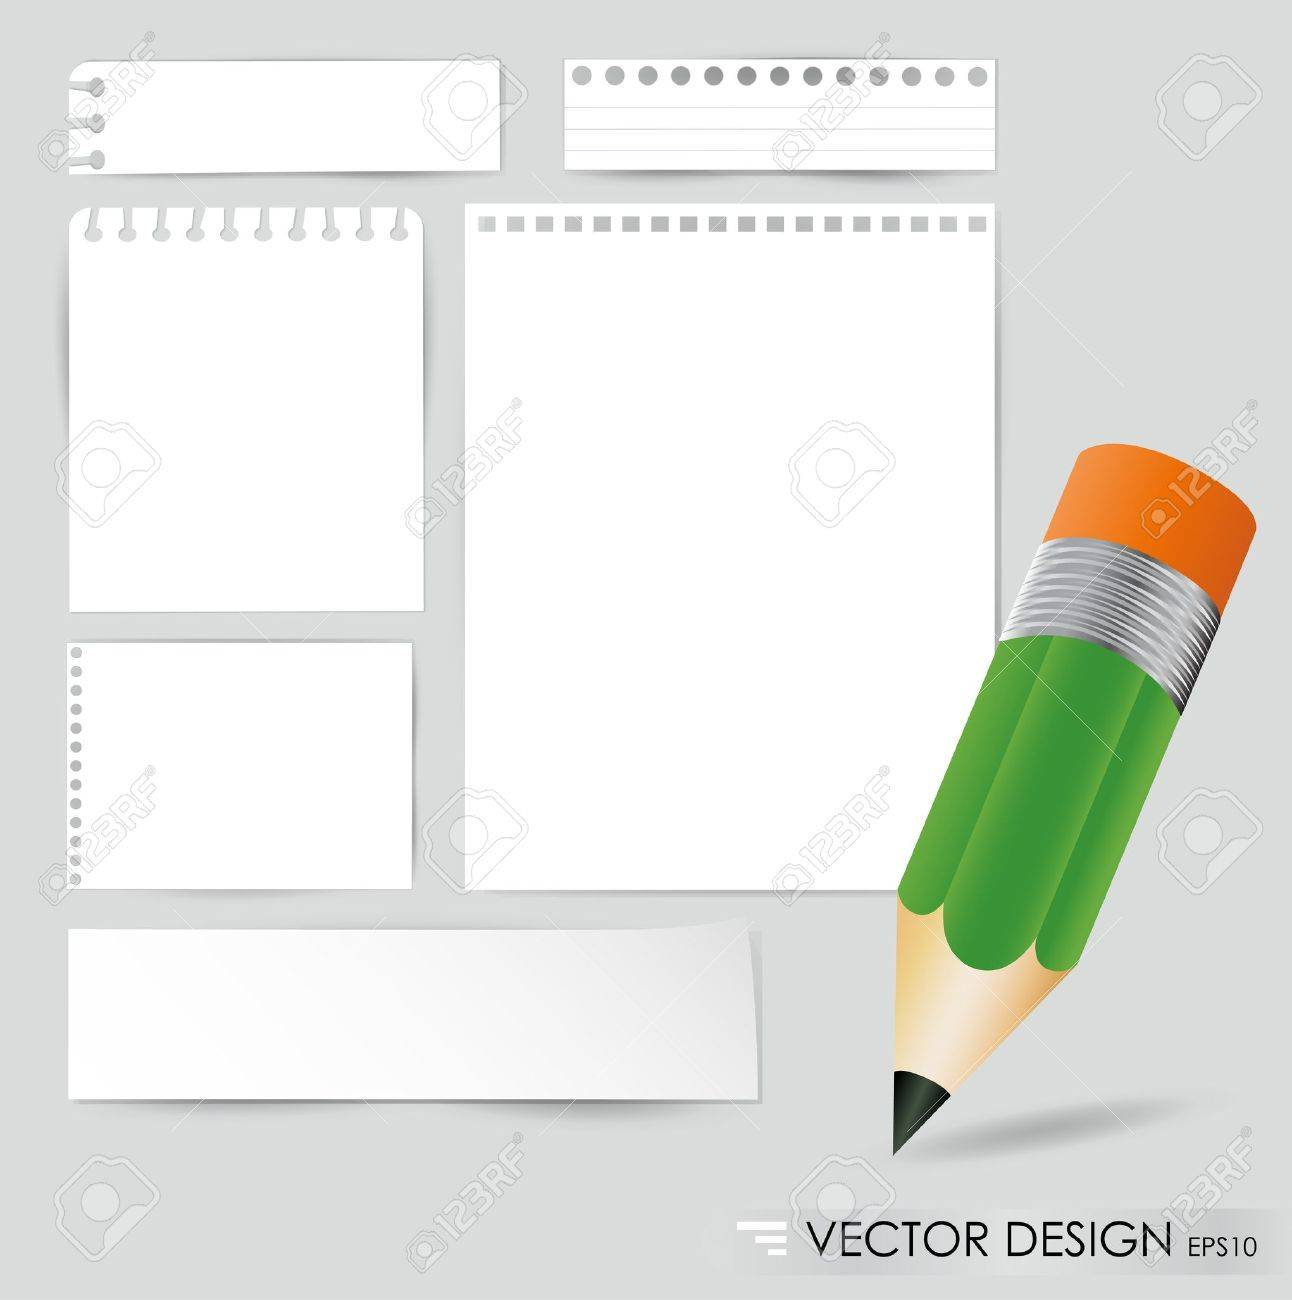 Pencil and white paper, ready for your message illustration Stock Vector - 14850759